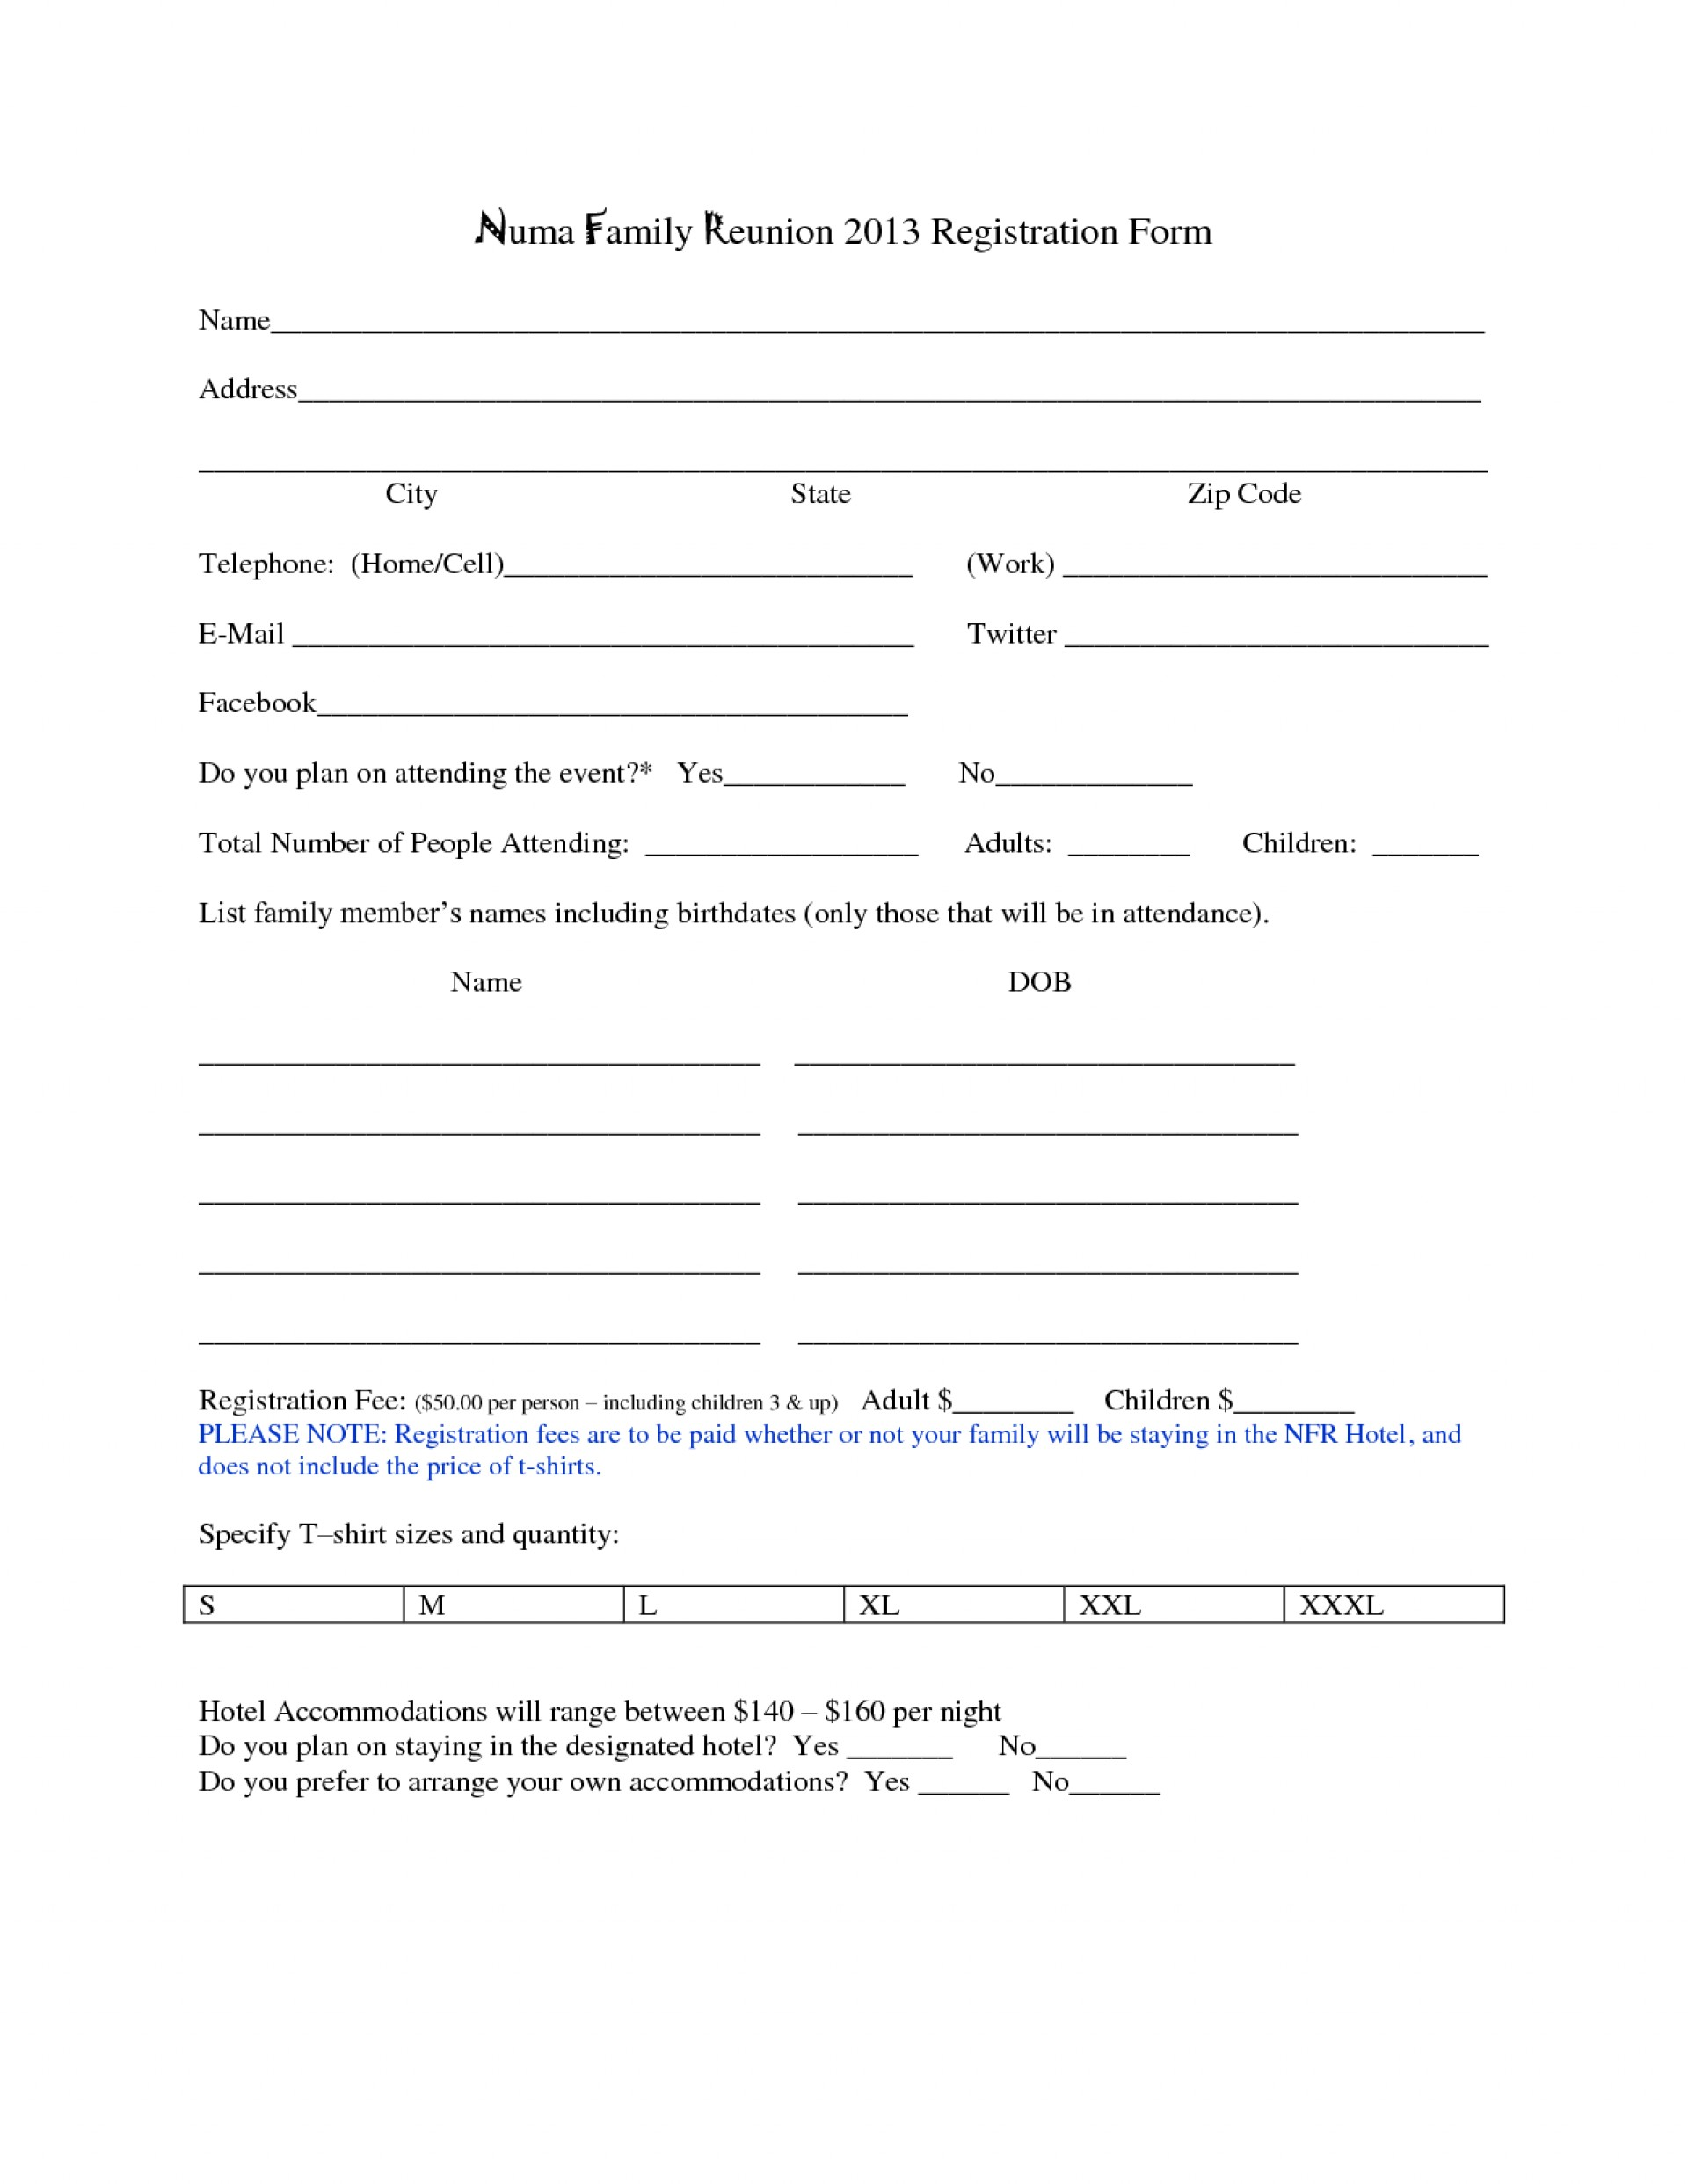 Printable Family Reunion Registration Form Template